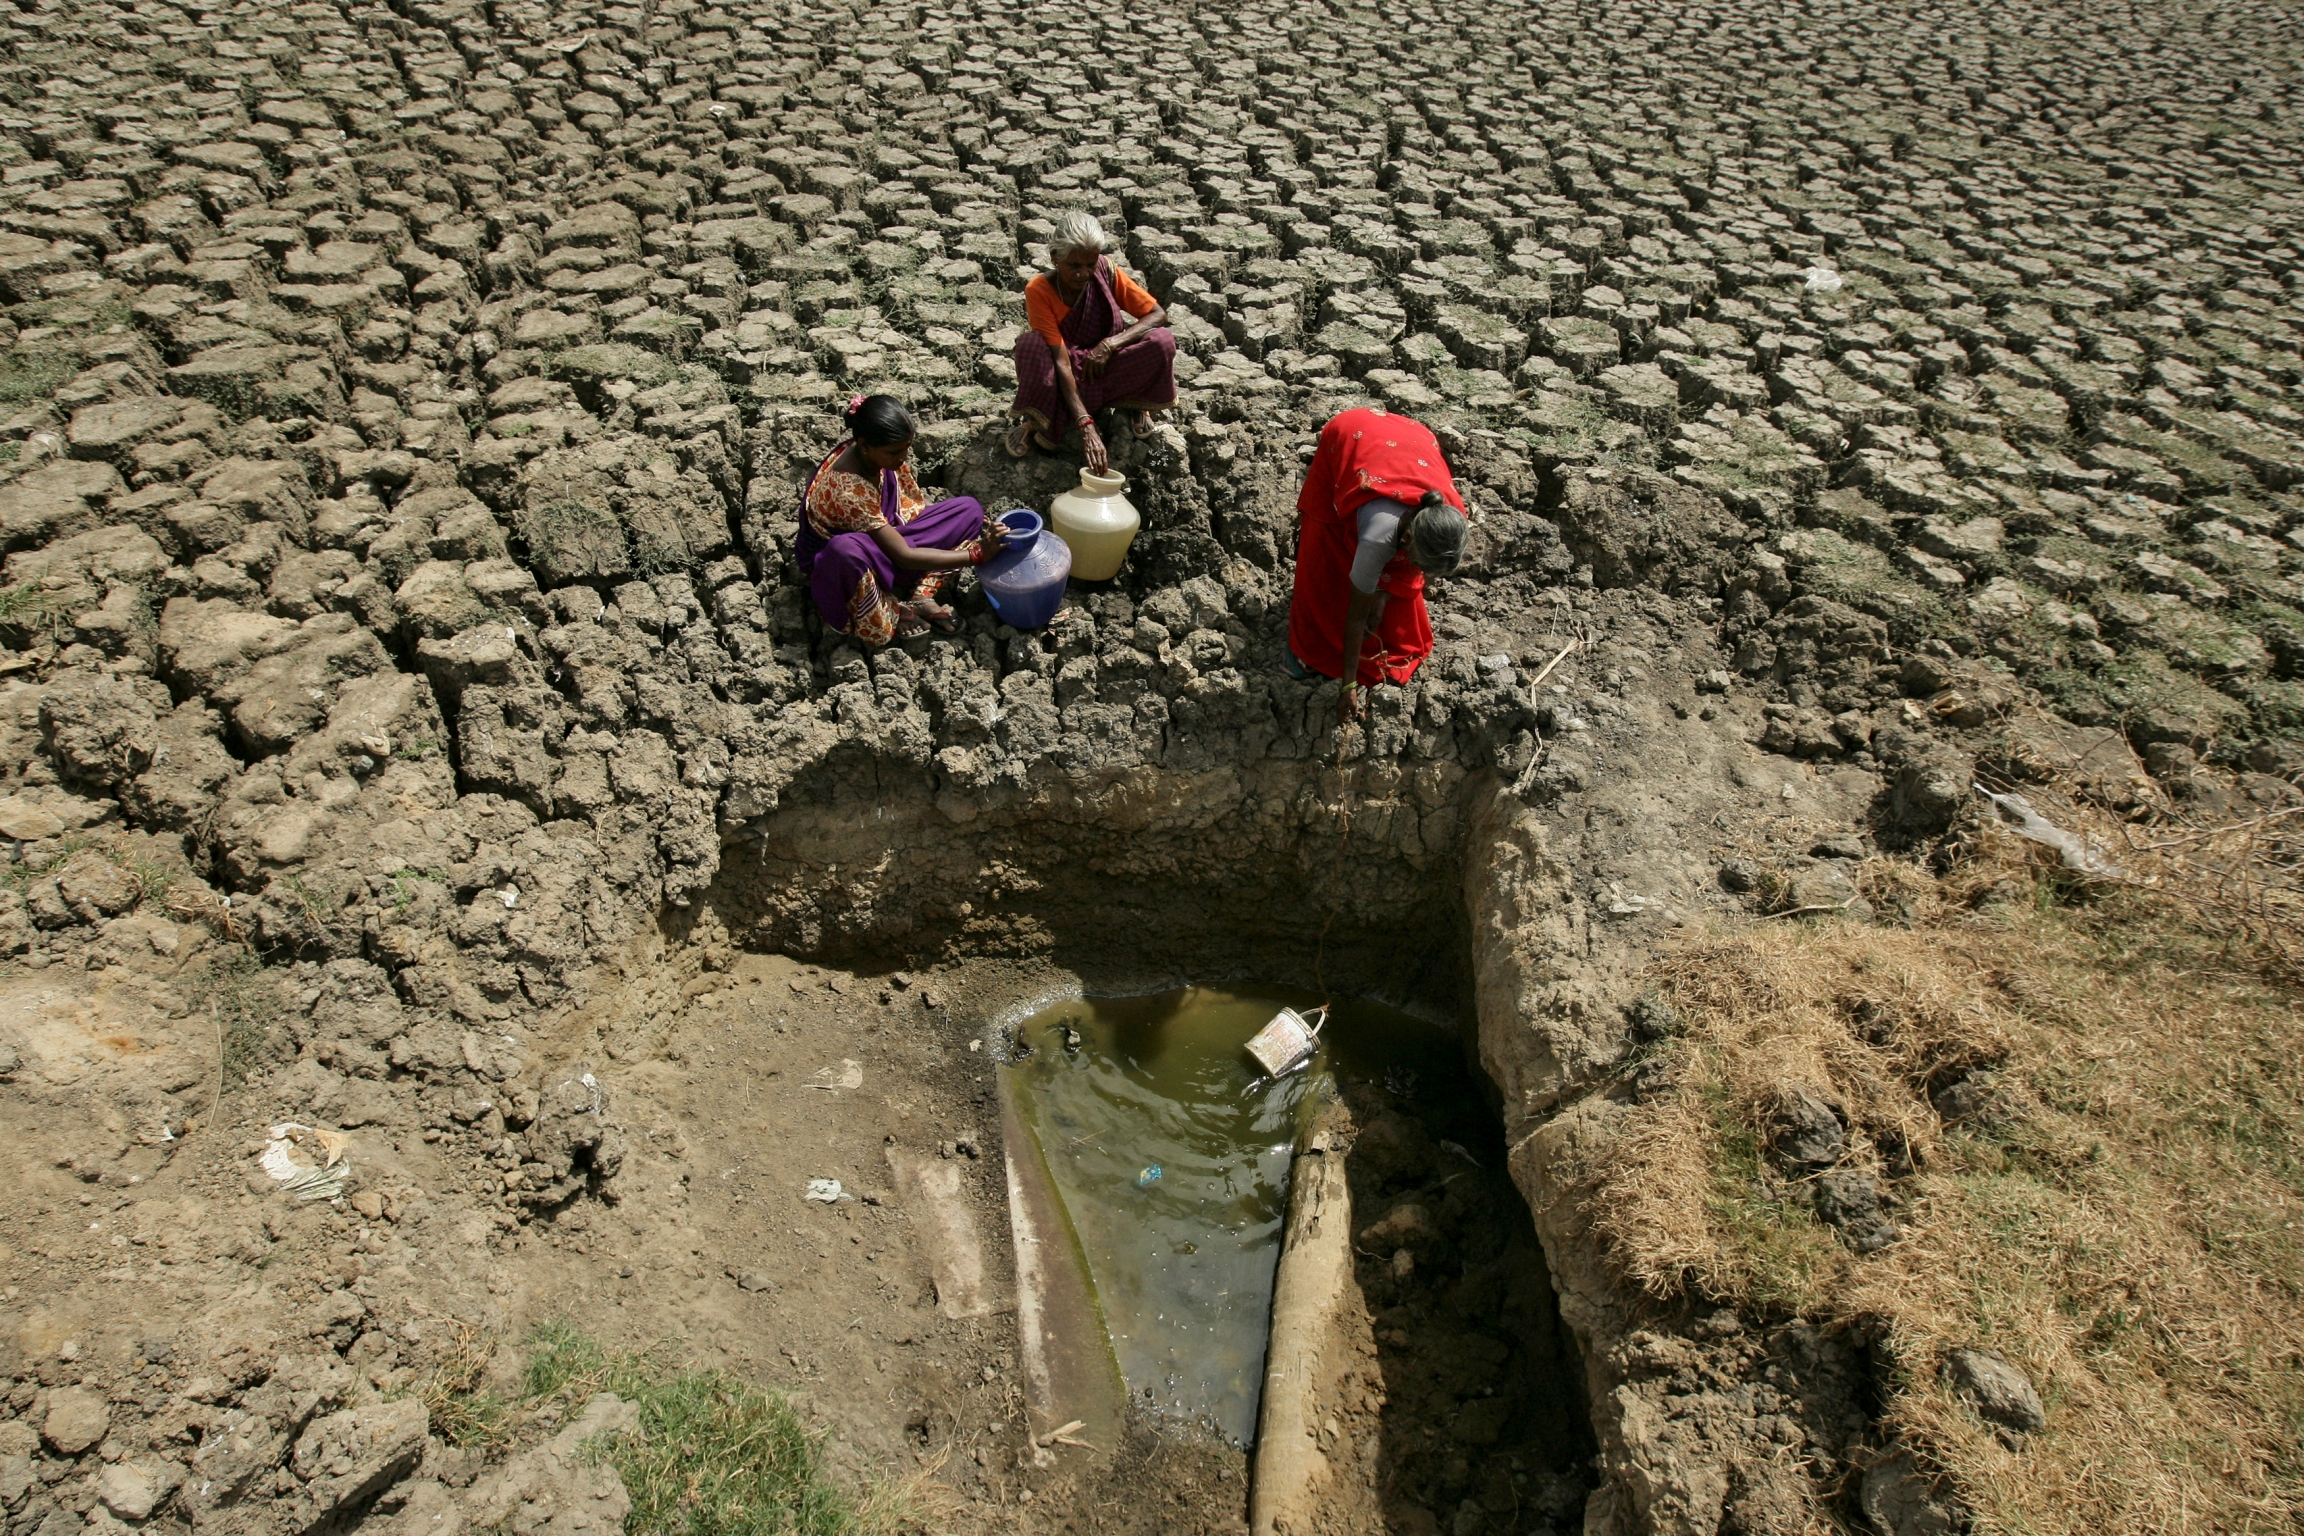 Women fetch water from an opening made by residents at a dried-up lake in Chennai, India, June 11, 2019.